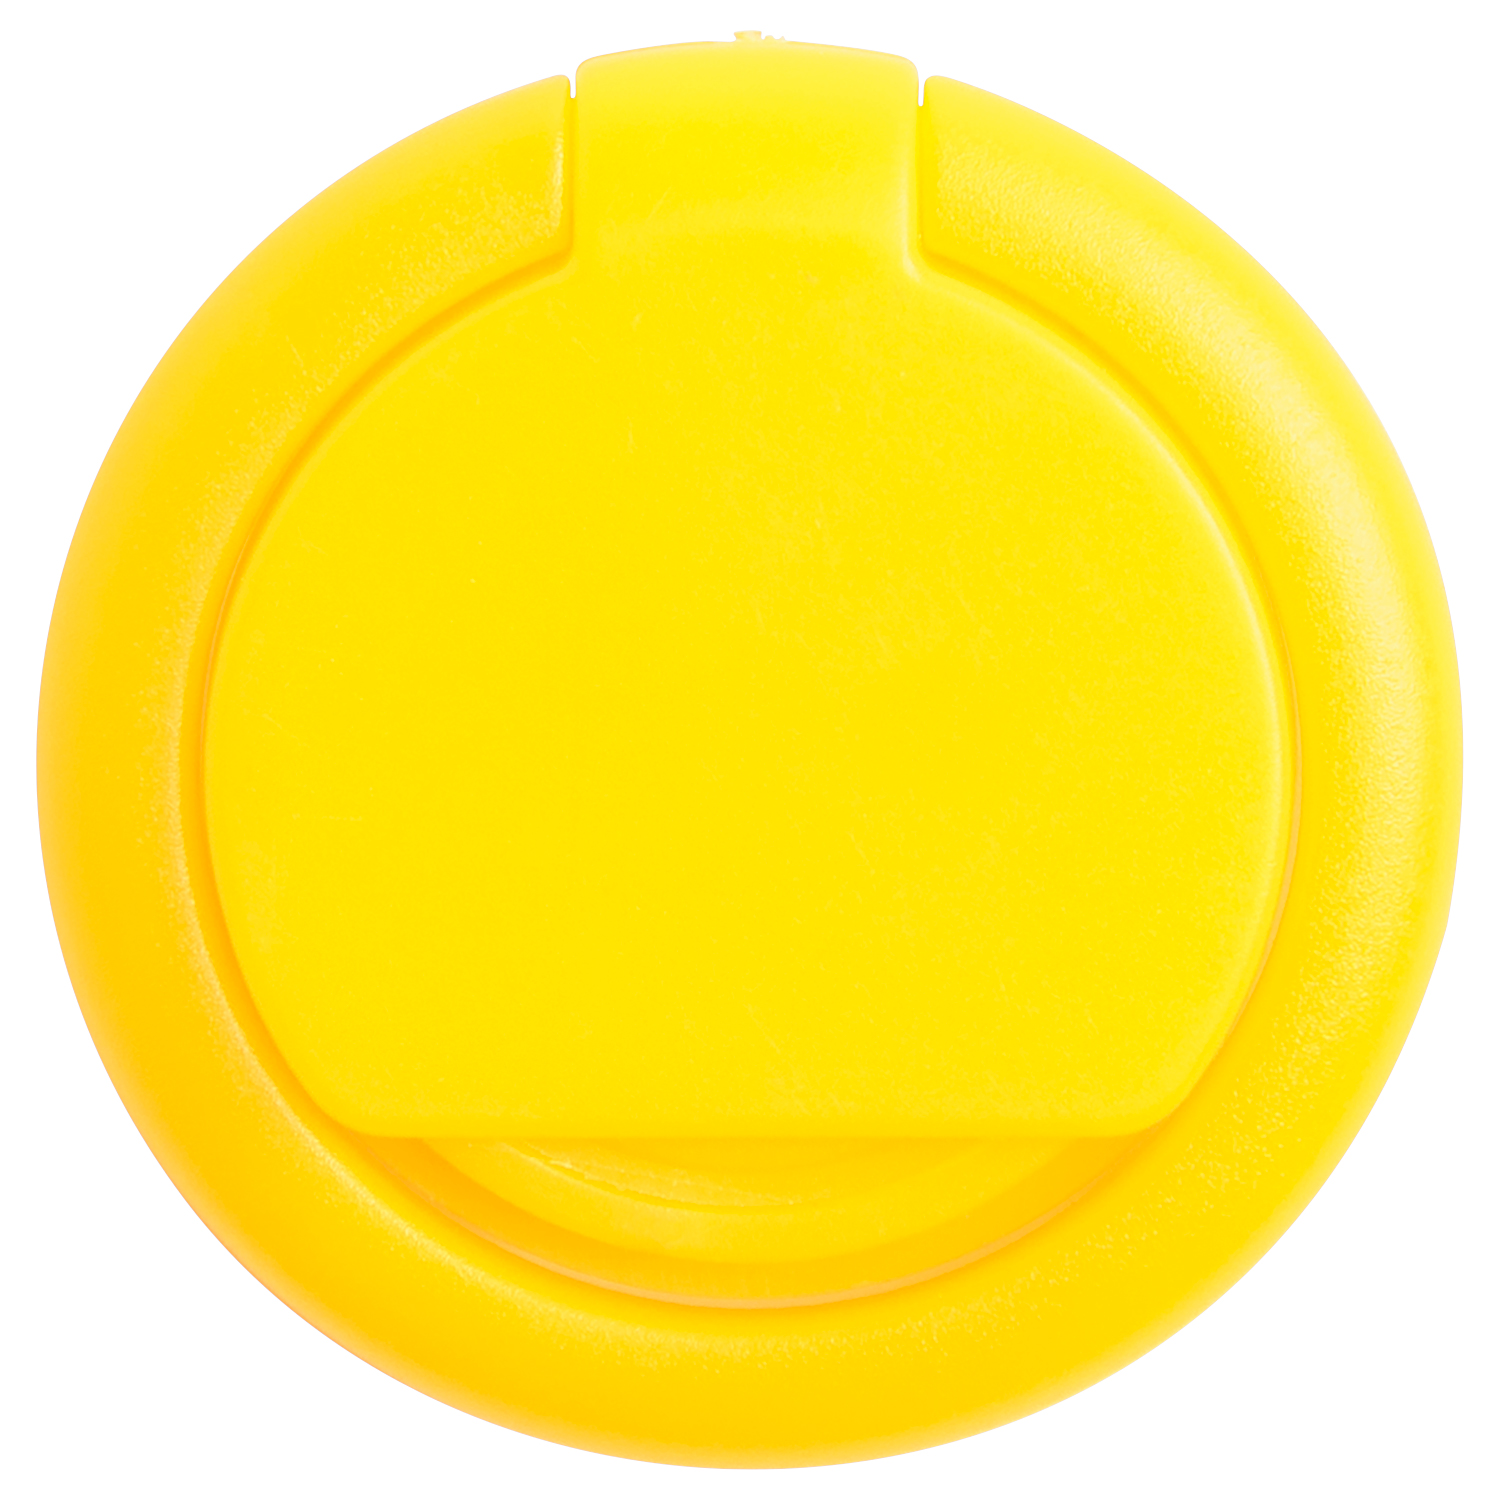 Phone Ring 868 (Plastic phone holder and phone ring) - hmi26868-12 (Yellow)